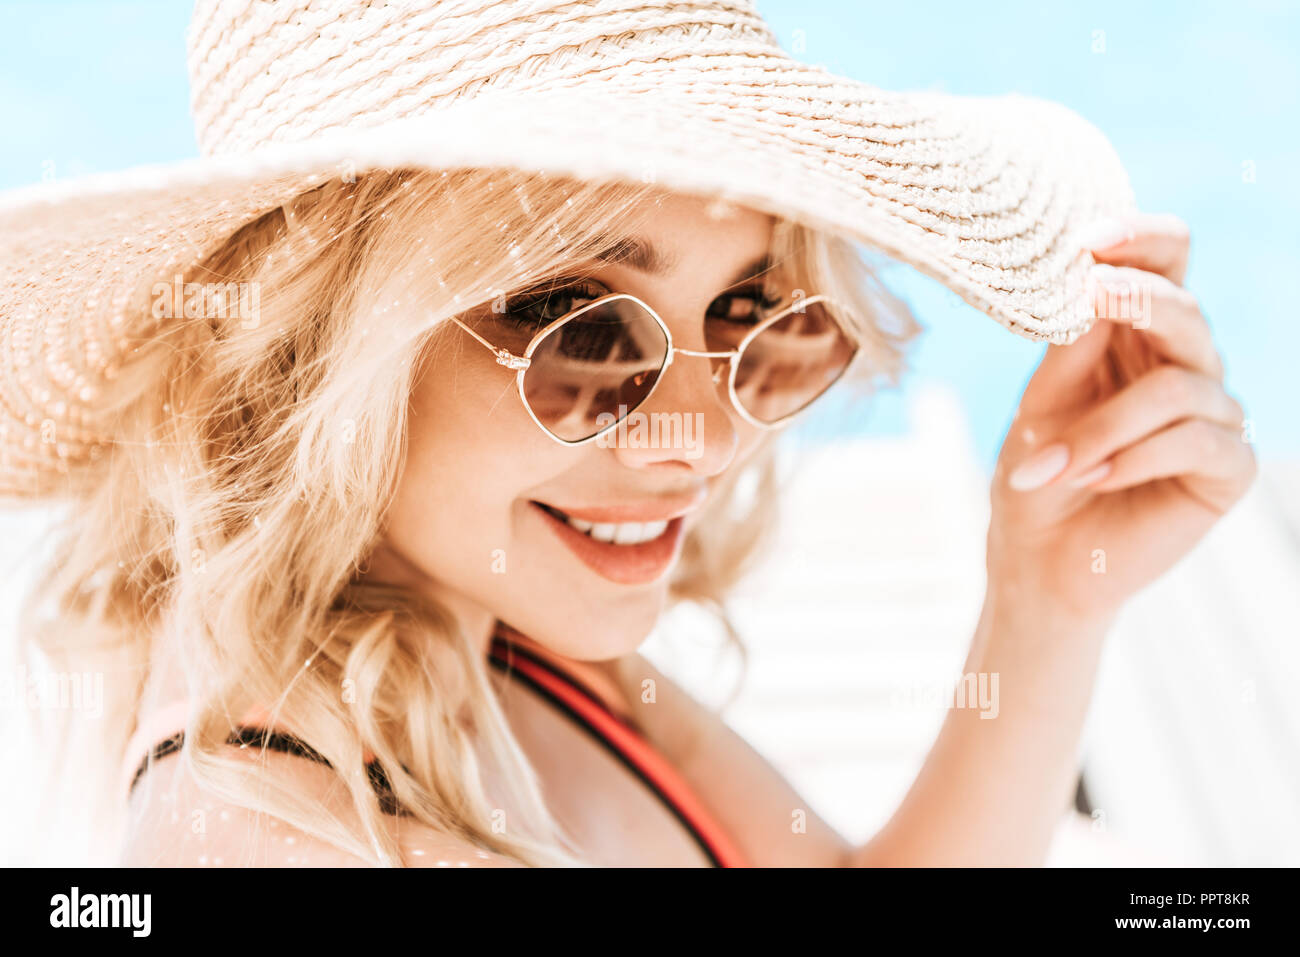 portrait of beautiful young blonde woman in wicker hat and sunglasses smiling at camera near pool - Stock Image